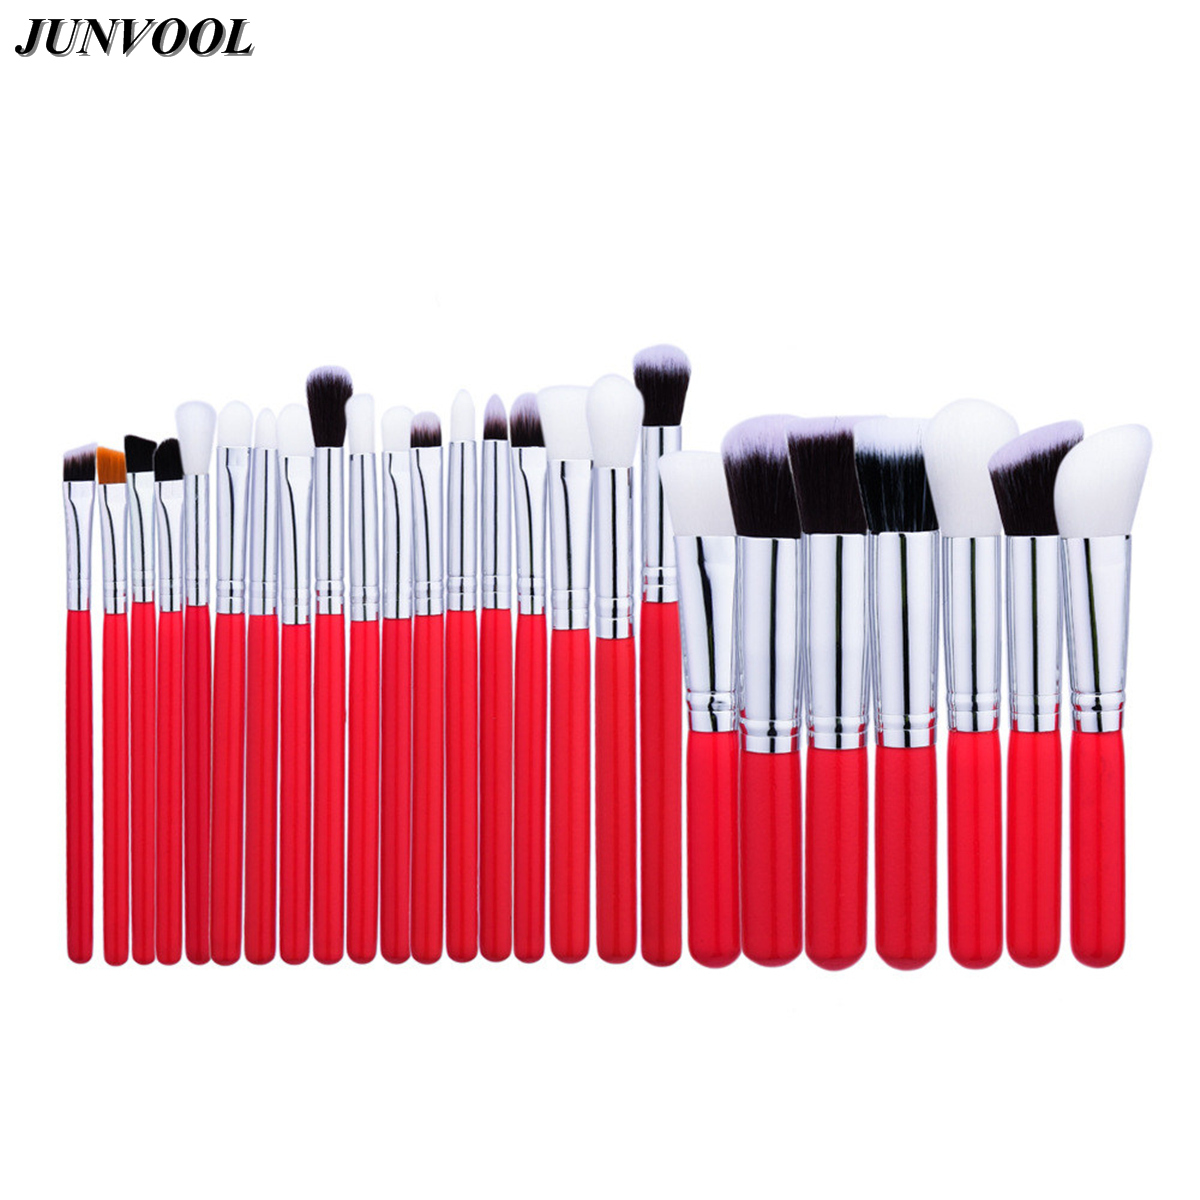 Professional 25pcs Cosmetic Makeup Brushes Set Beauty Blusher Eyeshadow Powder Foundation Eyebrow Make Up Brush Red and Silver free shipping compatible for xerox 7328 7335 7345 7346 chemical color toner powder printer color powder 4kg